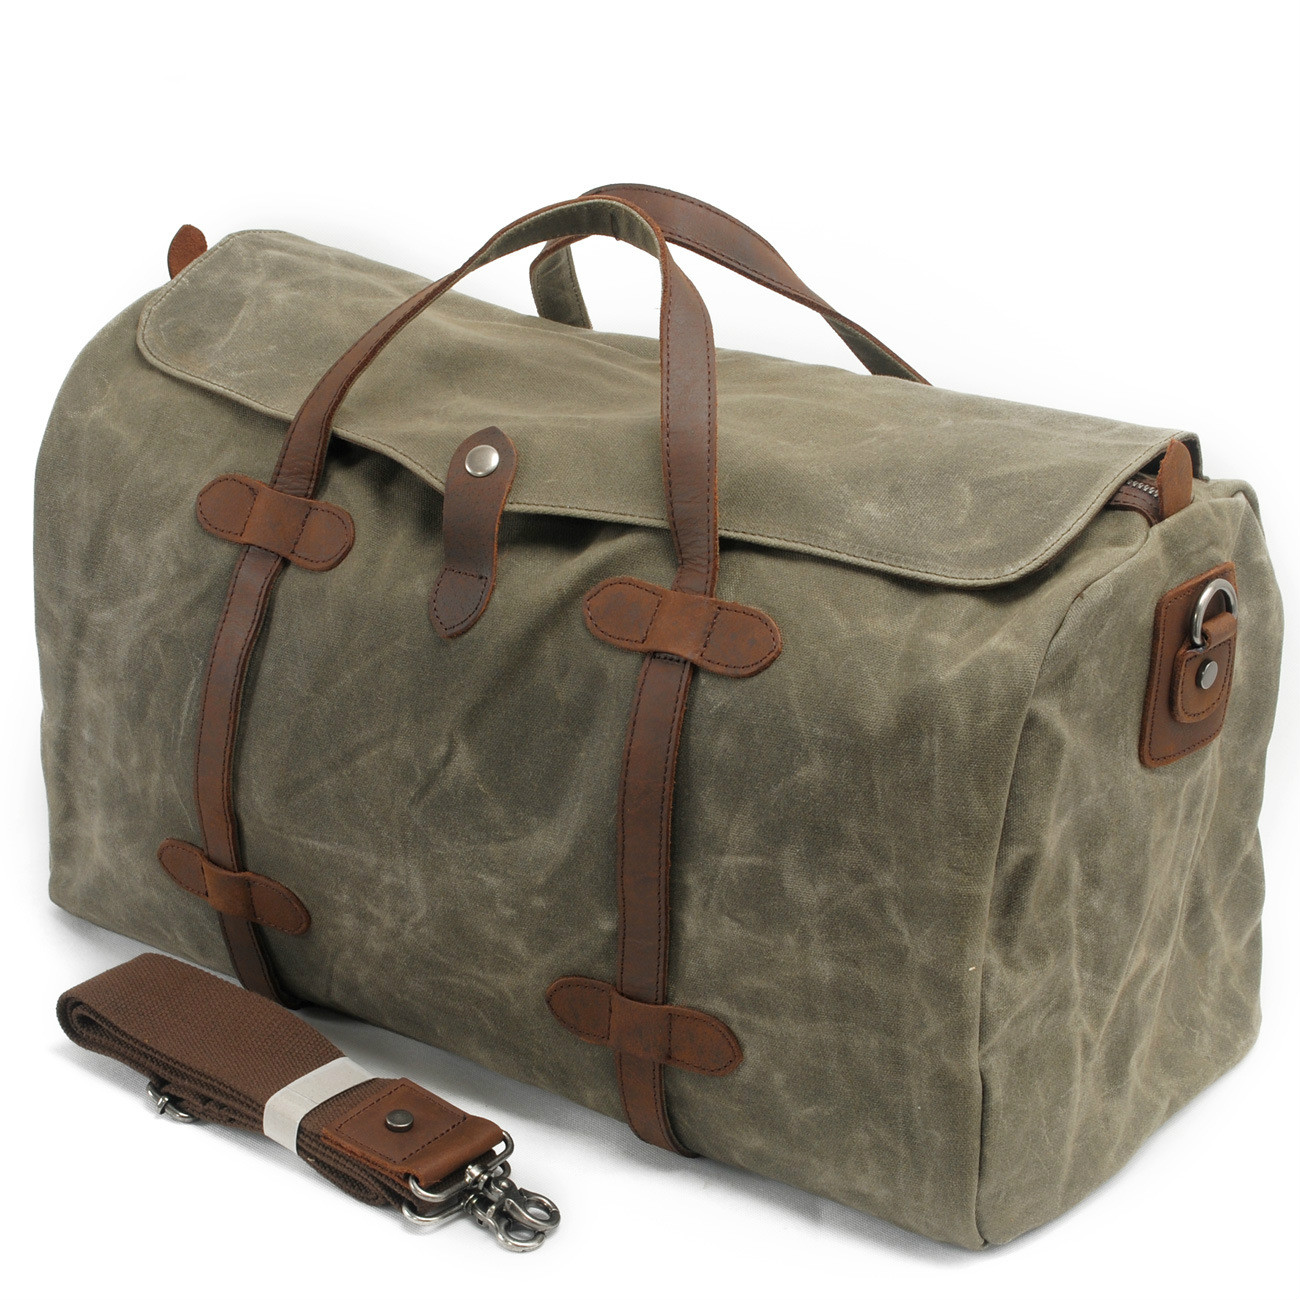 2019 Luxury Canvas Suitcases and Travel Bag Men Vintage Duffel Bags Big Carry on Luggage Weekend Large Waterproof Shoulder Totes2019 Luxury Canvas Suitcases and Travel Bag Men Vintage Duffel Bags Big Carry on Luggage Weekend Large Waterproof Shoulder Totes